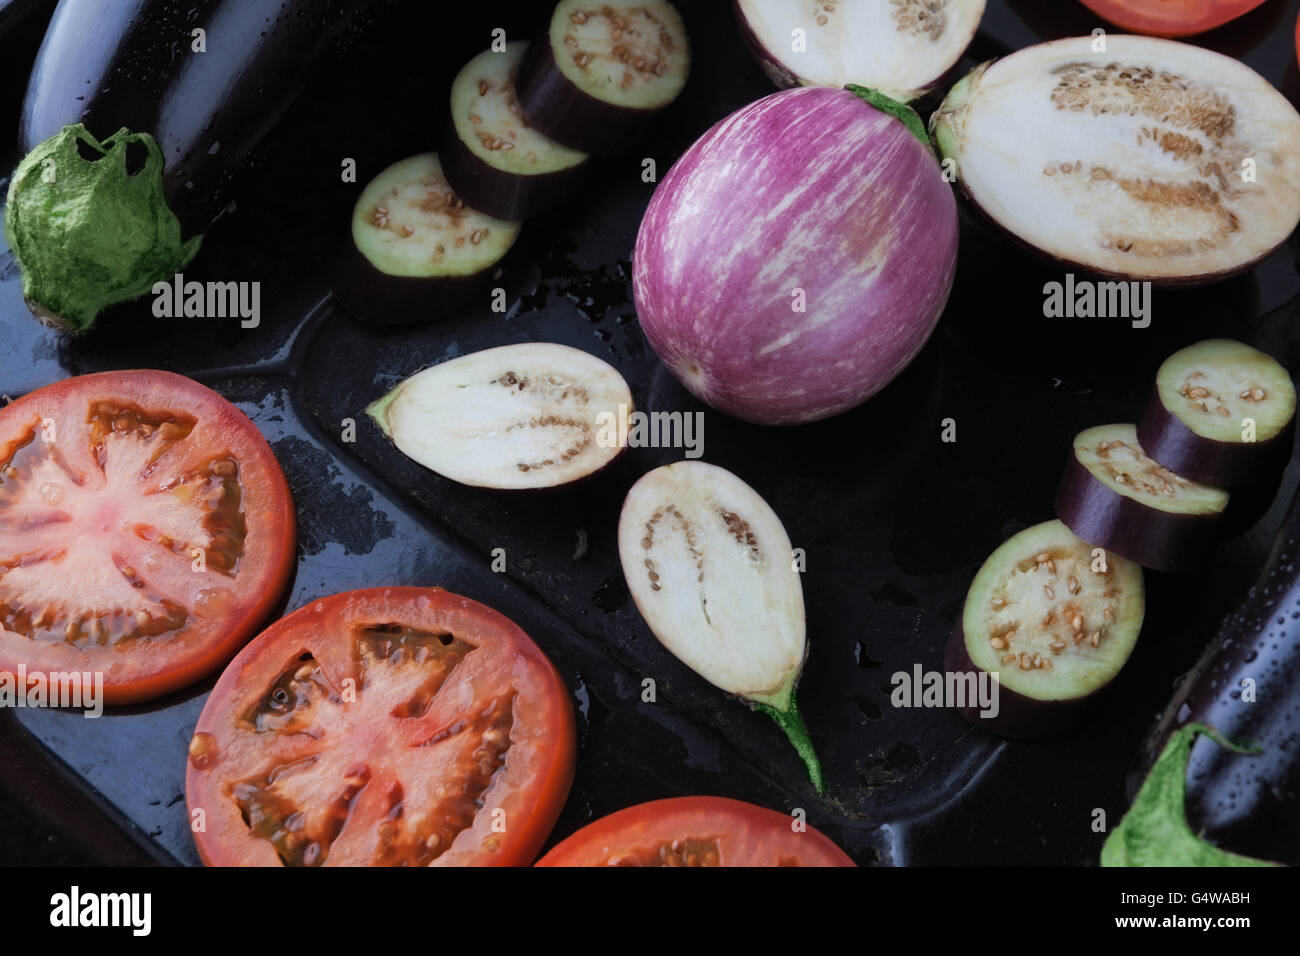 Whole and sliced eggplants and tomatoes on rustic baking tray closeup. Shallow depth of field - Stock Image